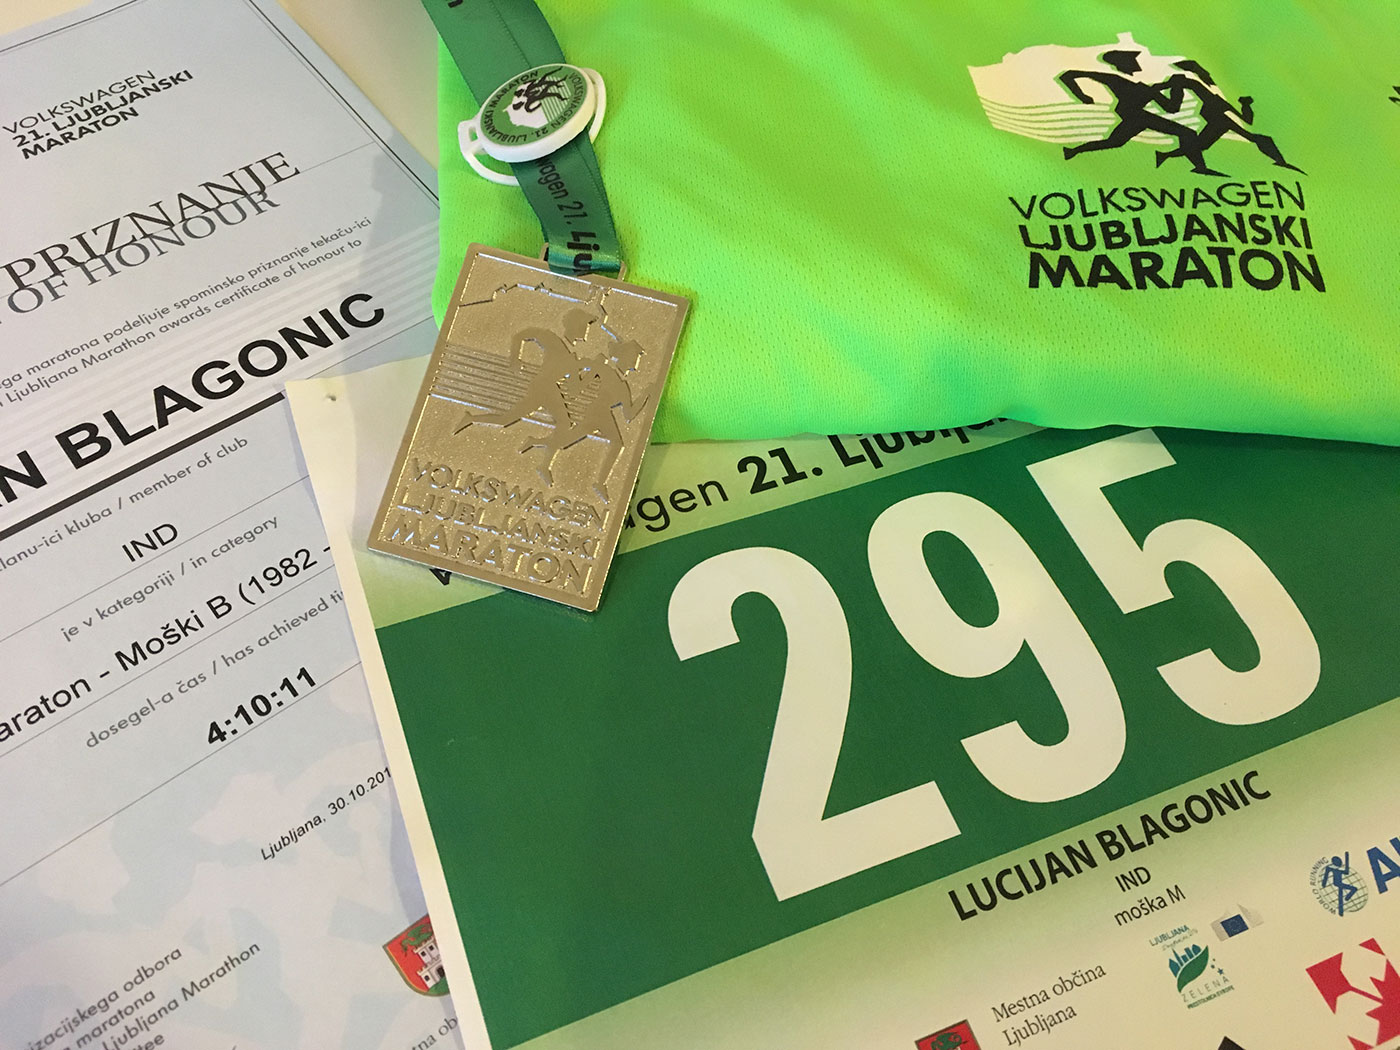 Finishers medal, number, shirt and certificate.